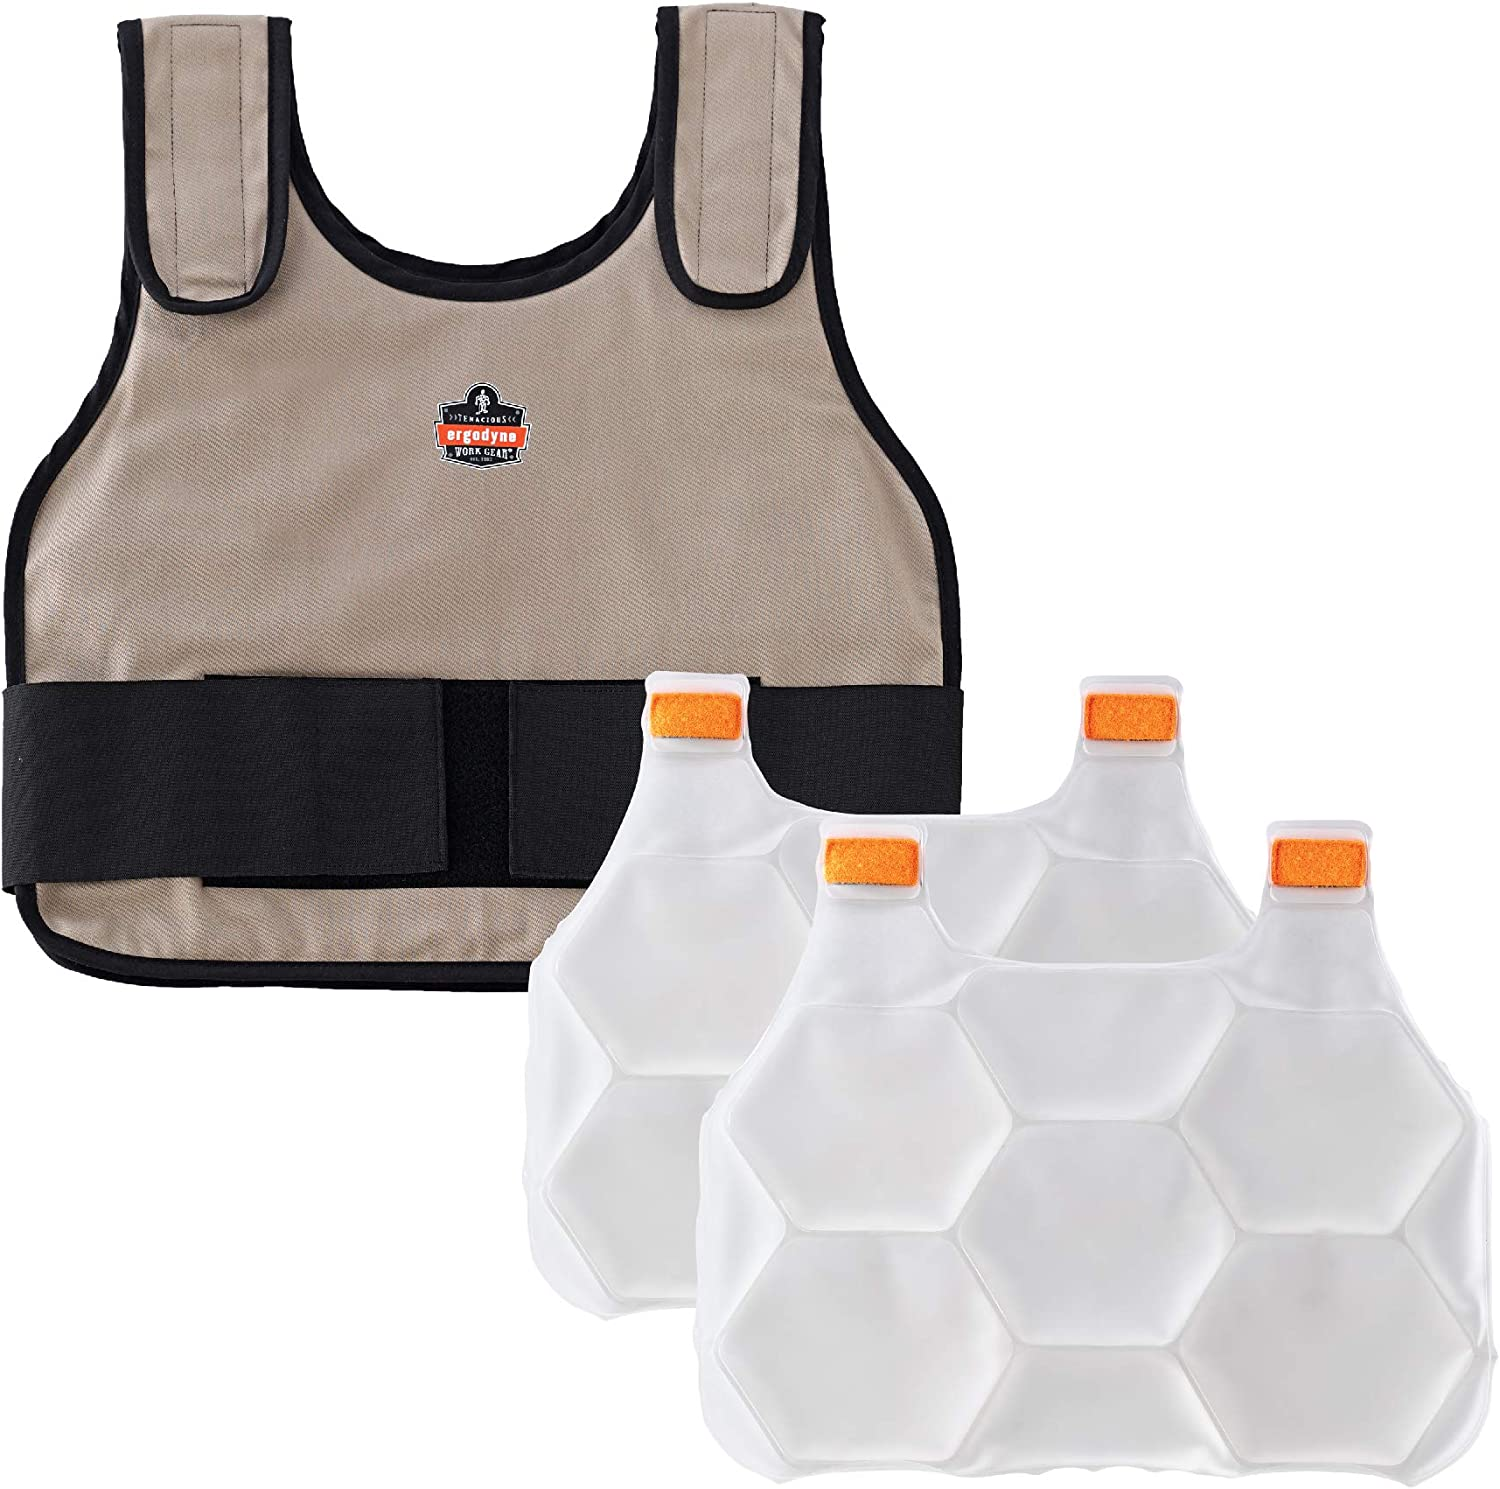 Cooling Vest with 2 Ice Packs, Instant Cooling Relief, Flexible Design, Ergodyne Chill Its 6230